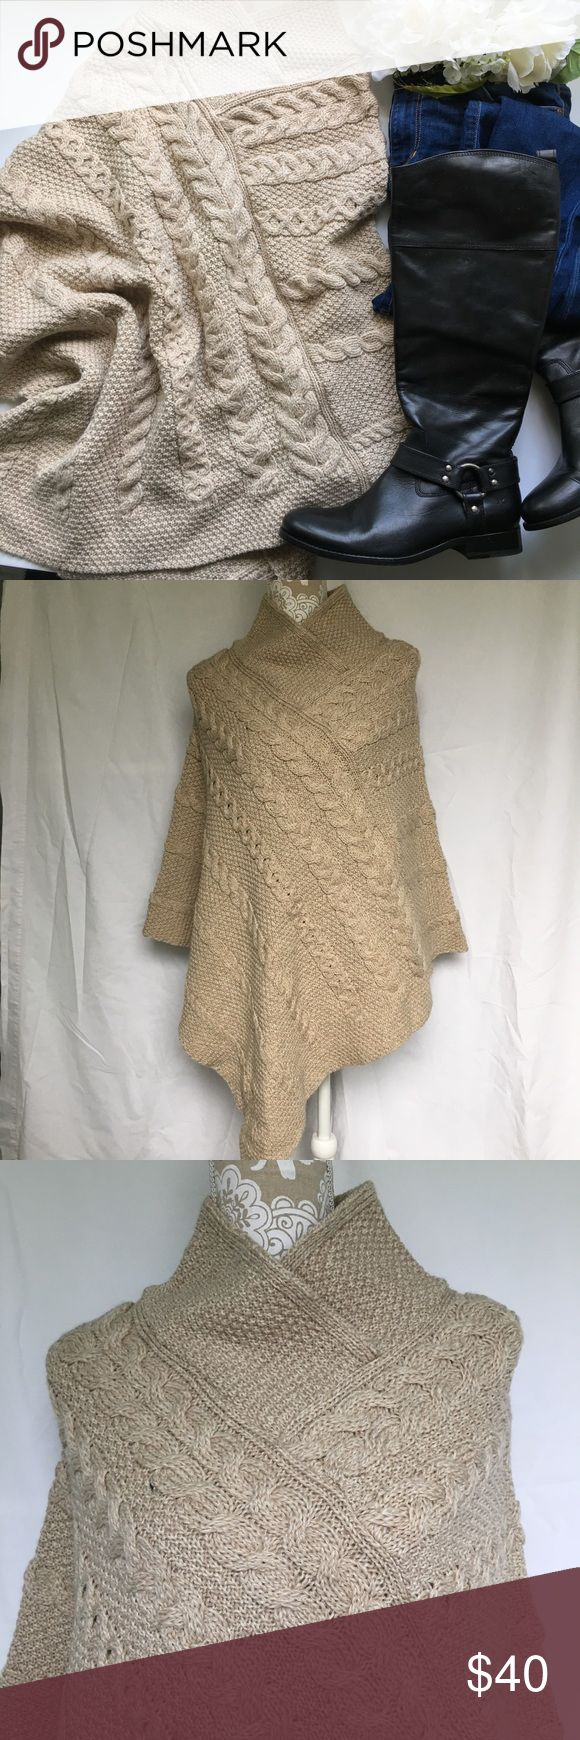 Inis Crafts // Merino Wool Cable Knit Cape - tan Extra comfy cape for the colder months. Purchased from TJ Max, brand is Inis Crafts. 100% merino wool. Cable knit design. Mock turtleneck collar. Tan color. V shape front and back. In excellent condition, never been worn. Inis Crafts Sweaters Shrugs & Ponchos